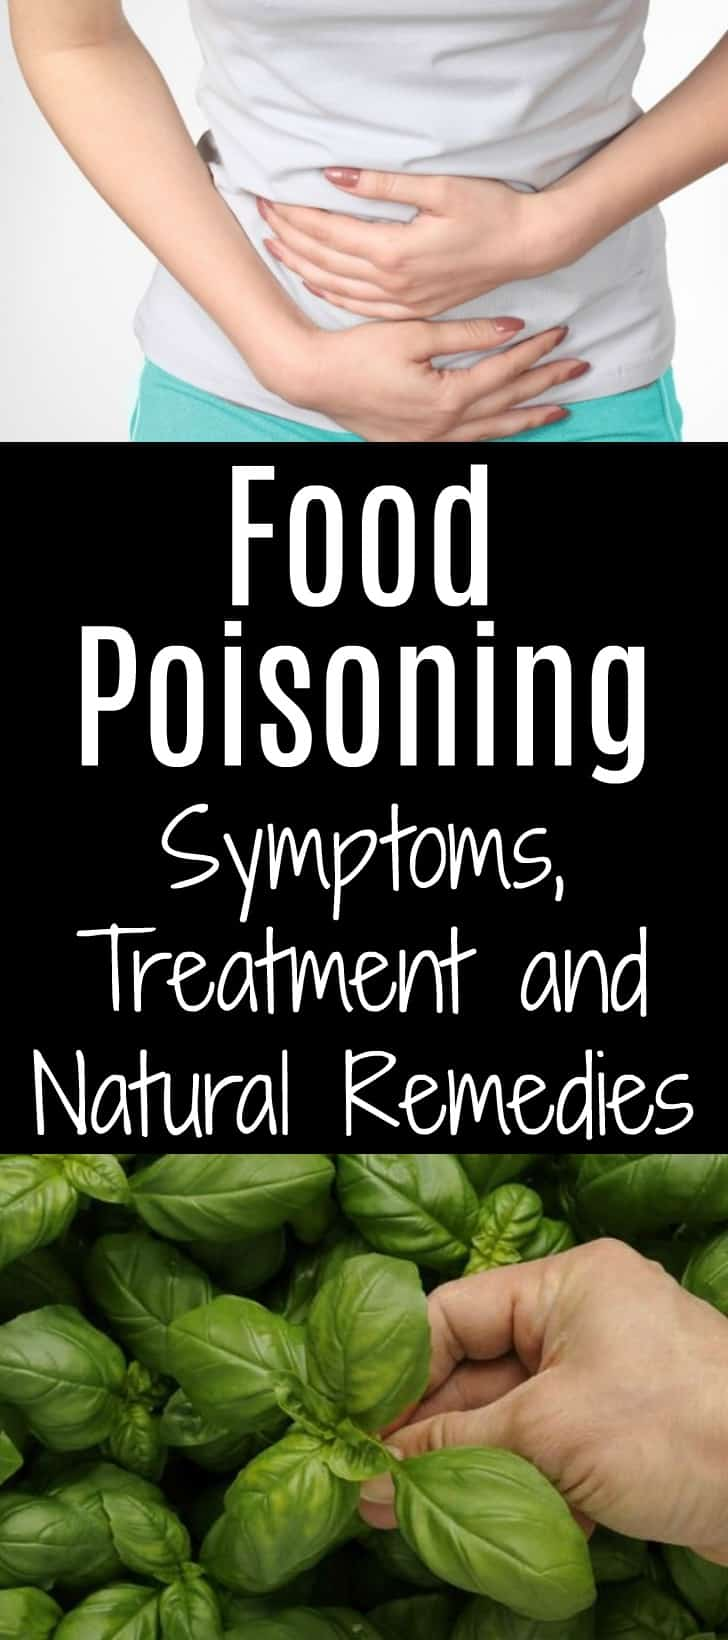 Food Poisoning: Symptoms, Treatment and Natural Remedies